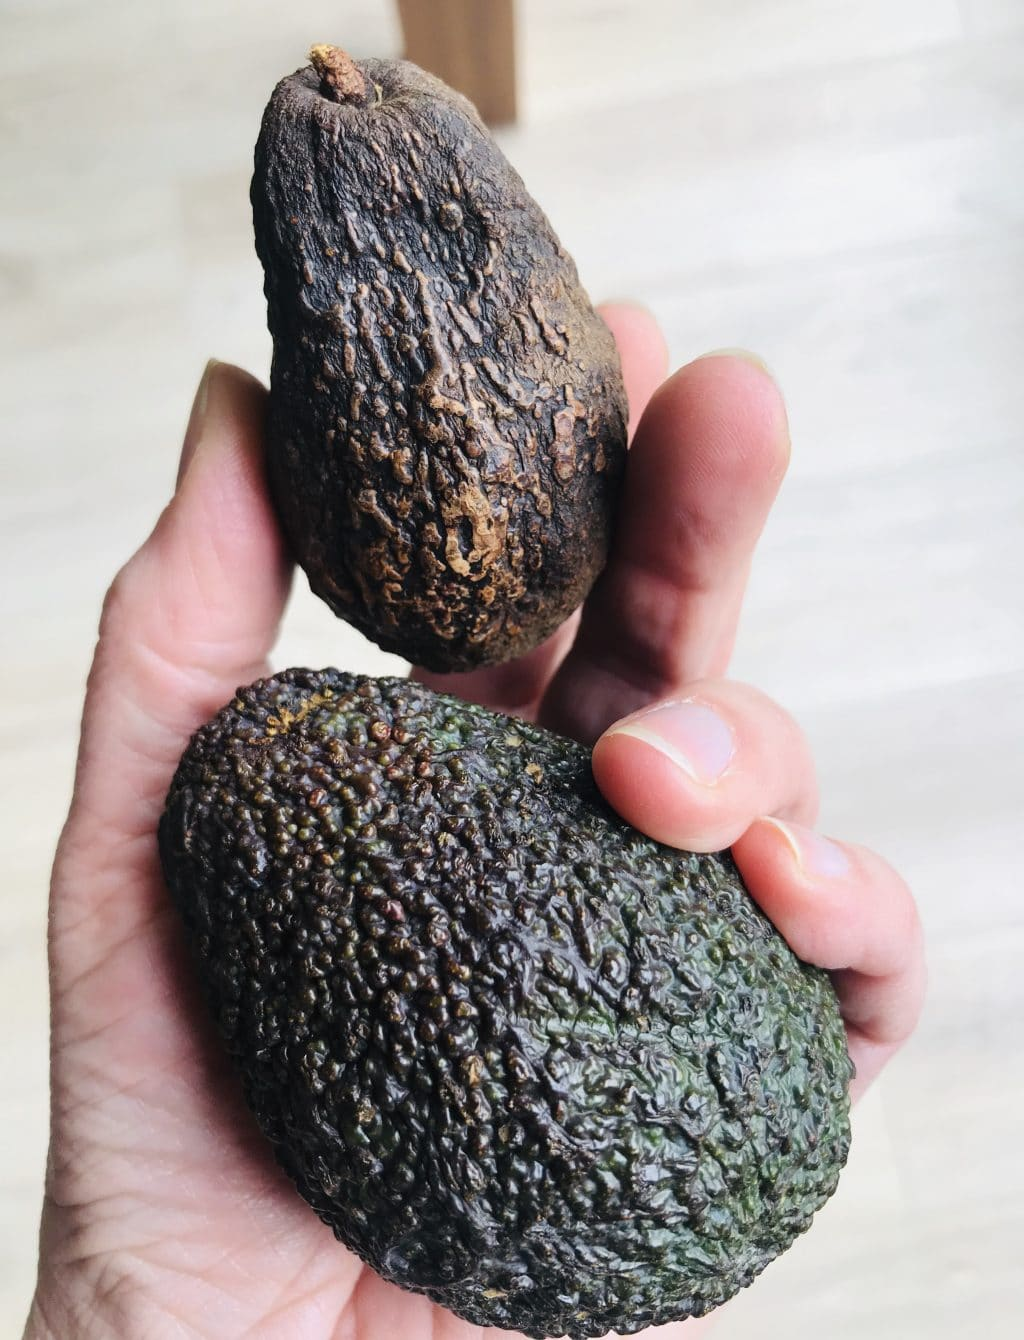 avocado rijp